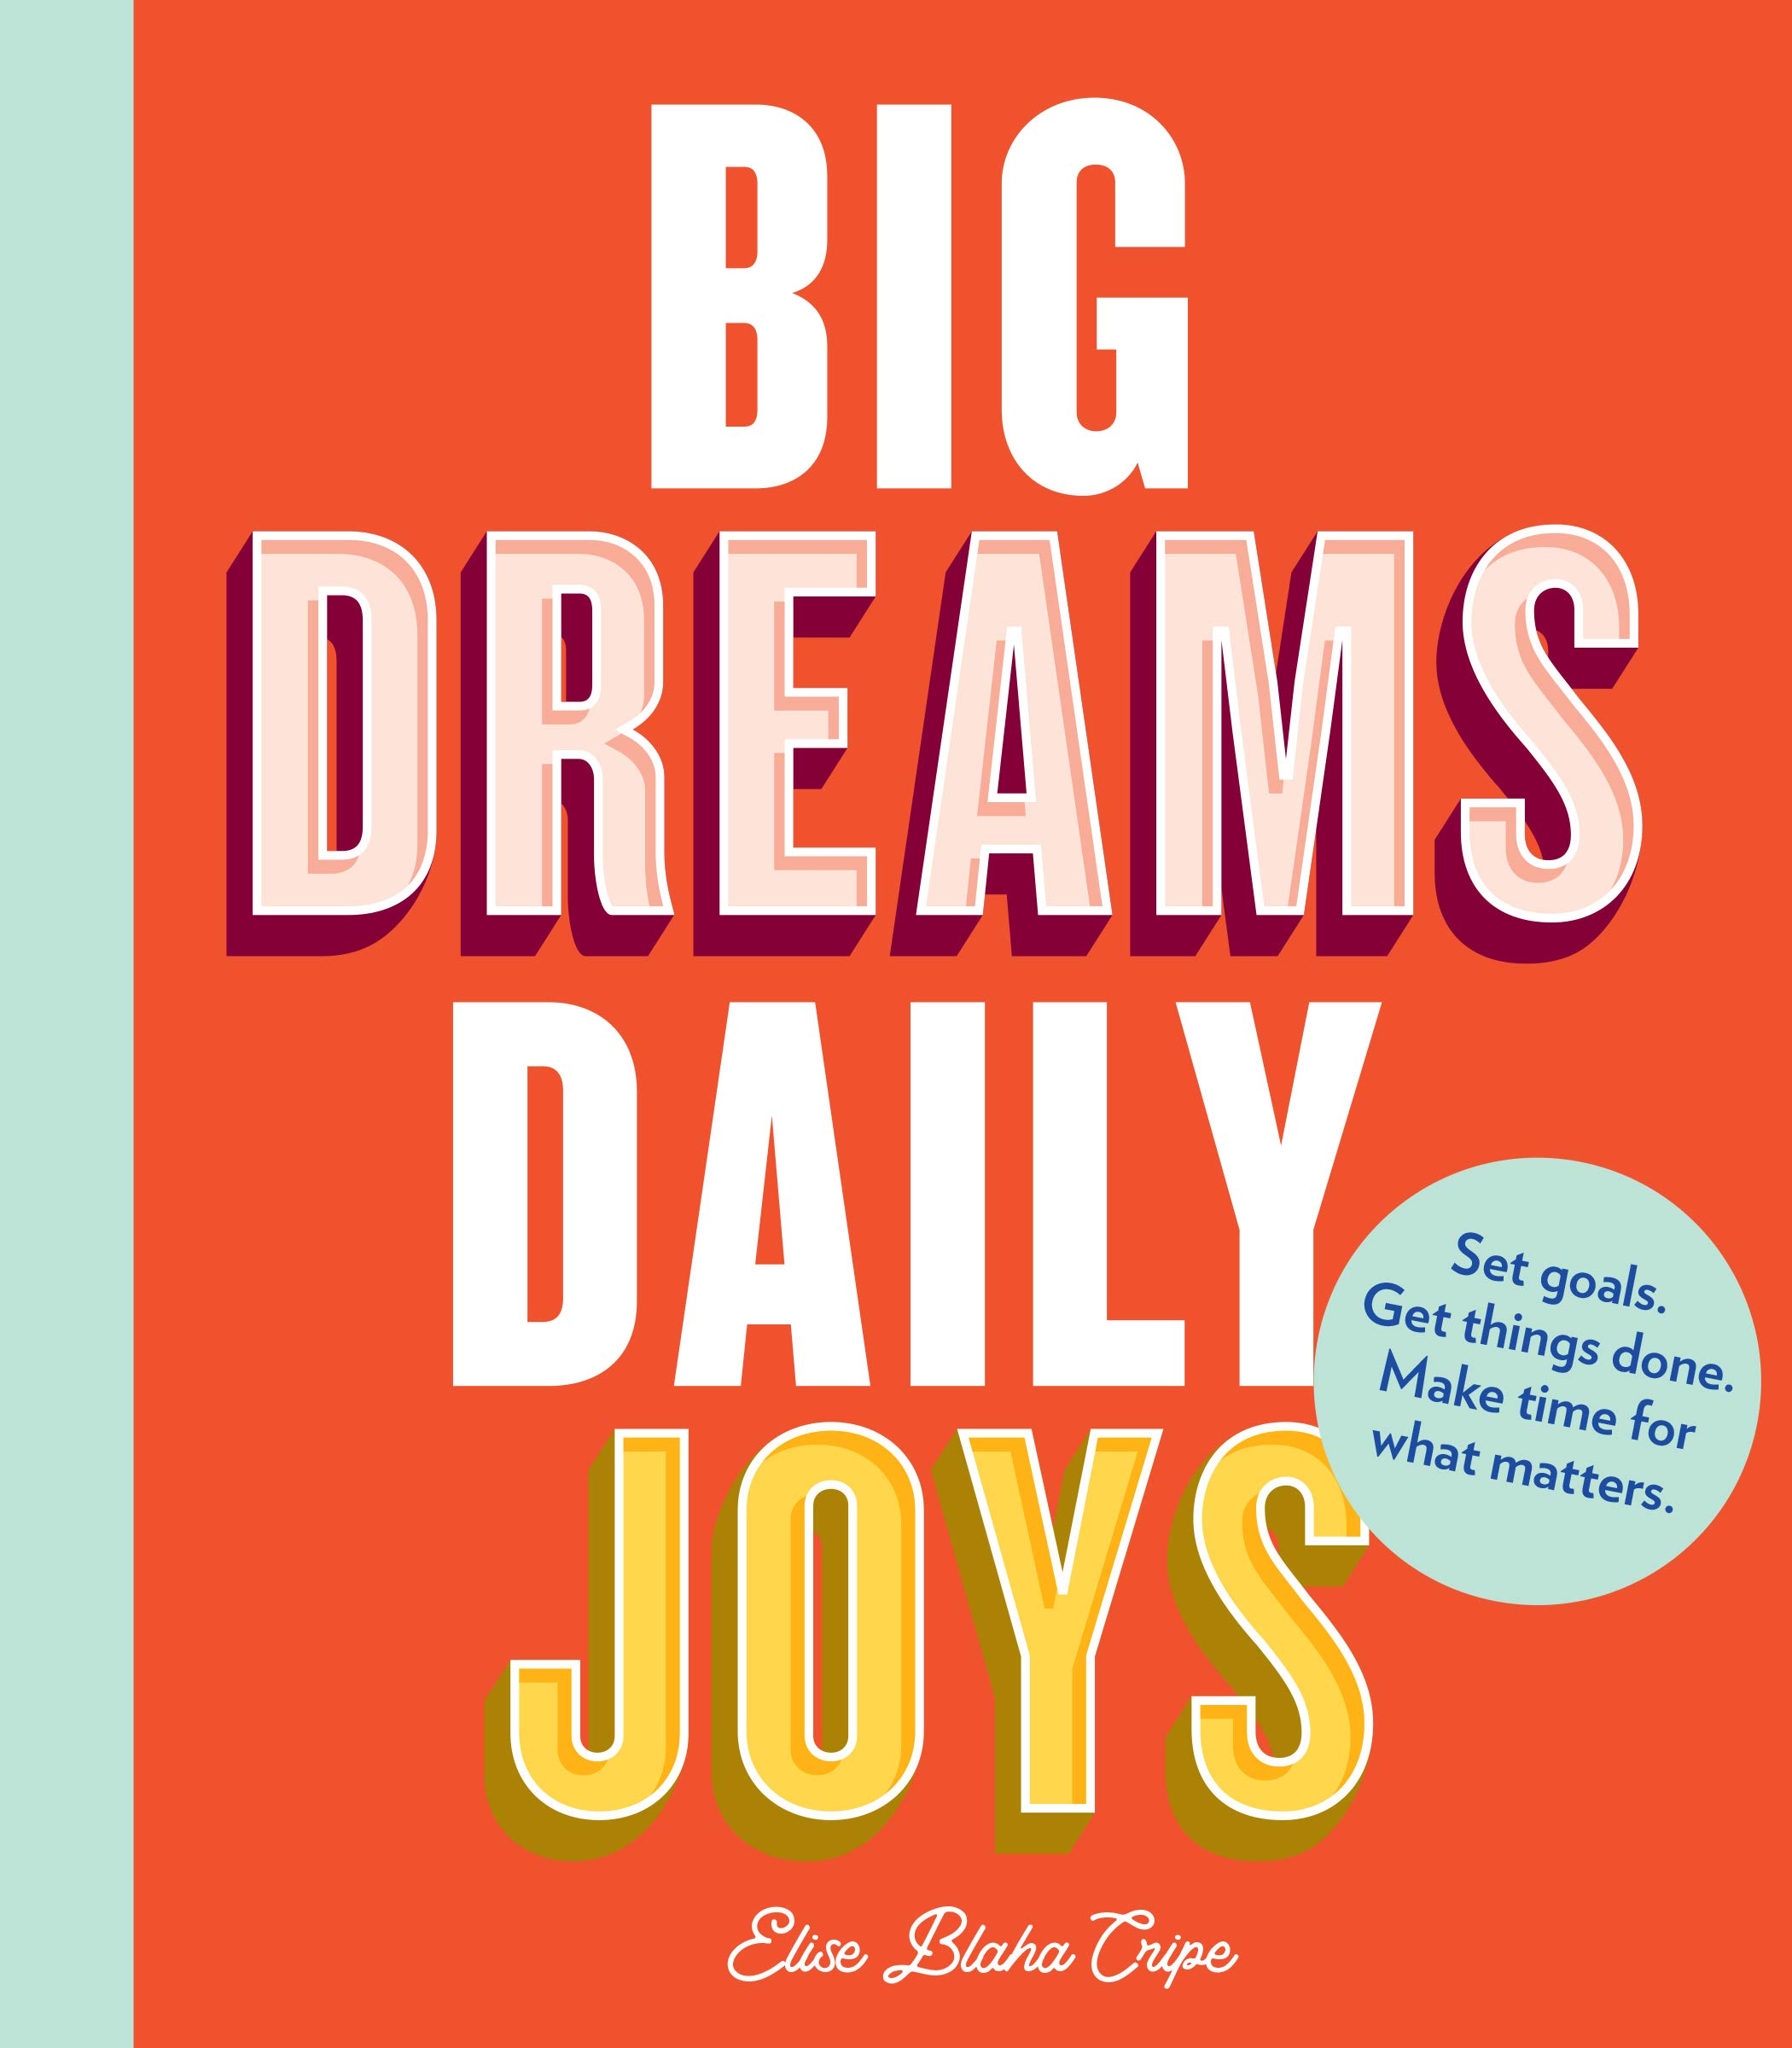 Big Dreams, Daily Joys: Set goals. Get things done. Make time for what matters. (Creative Productivity and Goal Setting Book, Motivational Personal Development Book for Women) by Chronicle Books